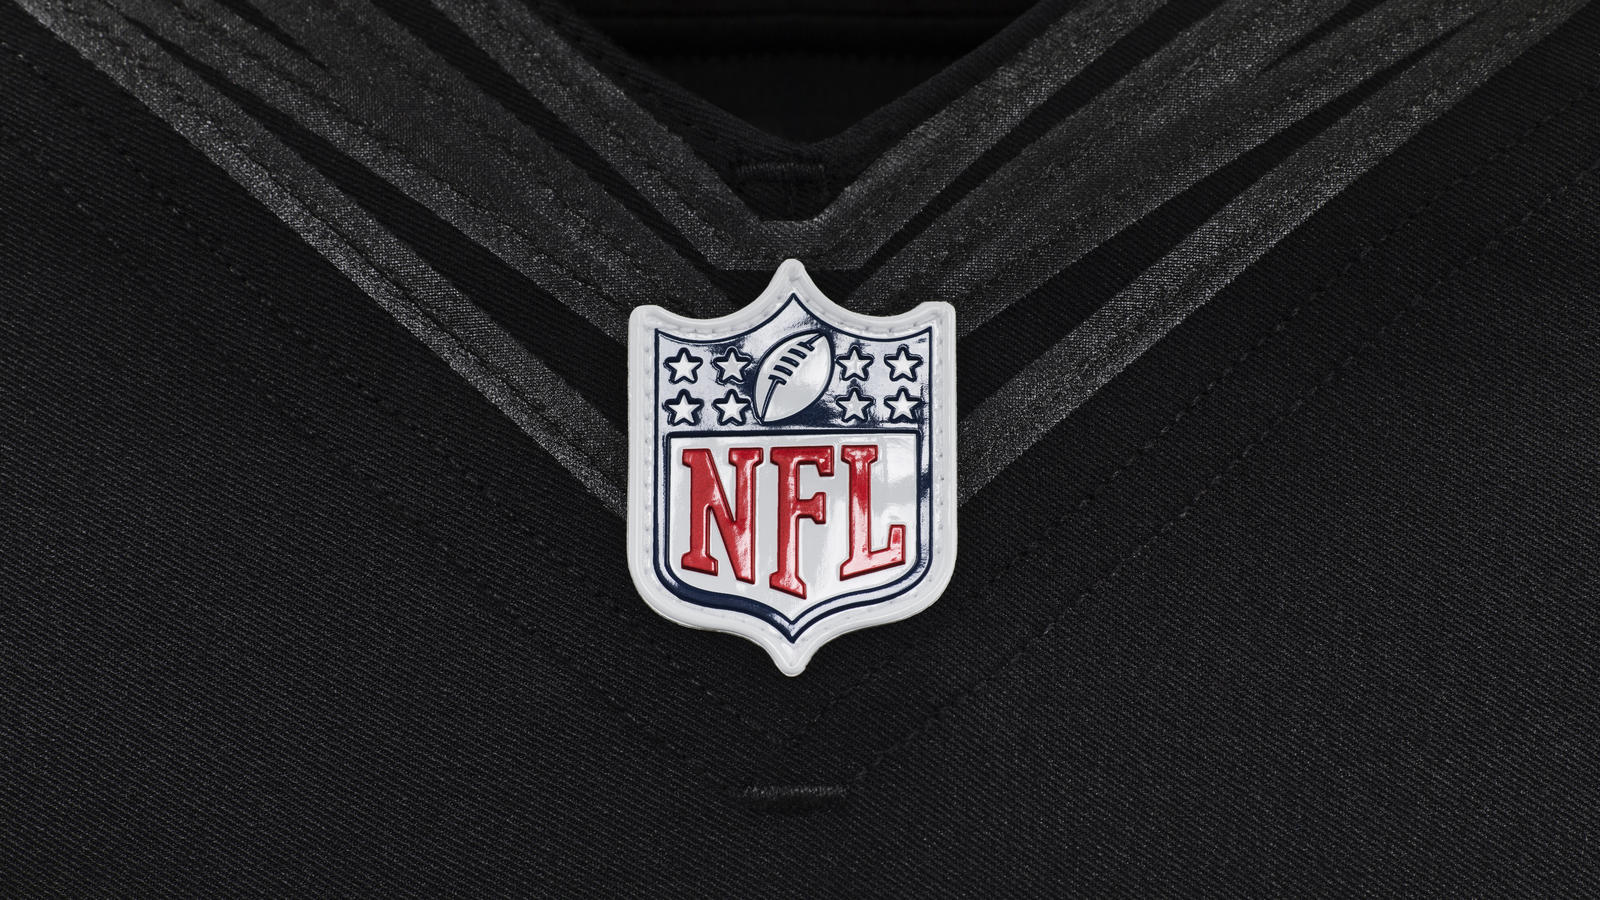 Jaguars Nfl Nike Elite 51 Uniform Flywire